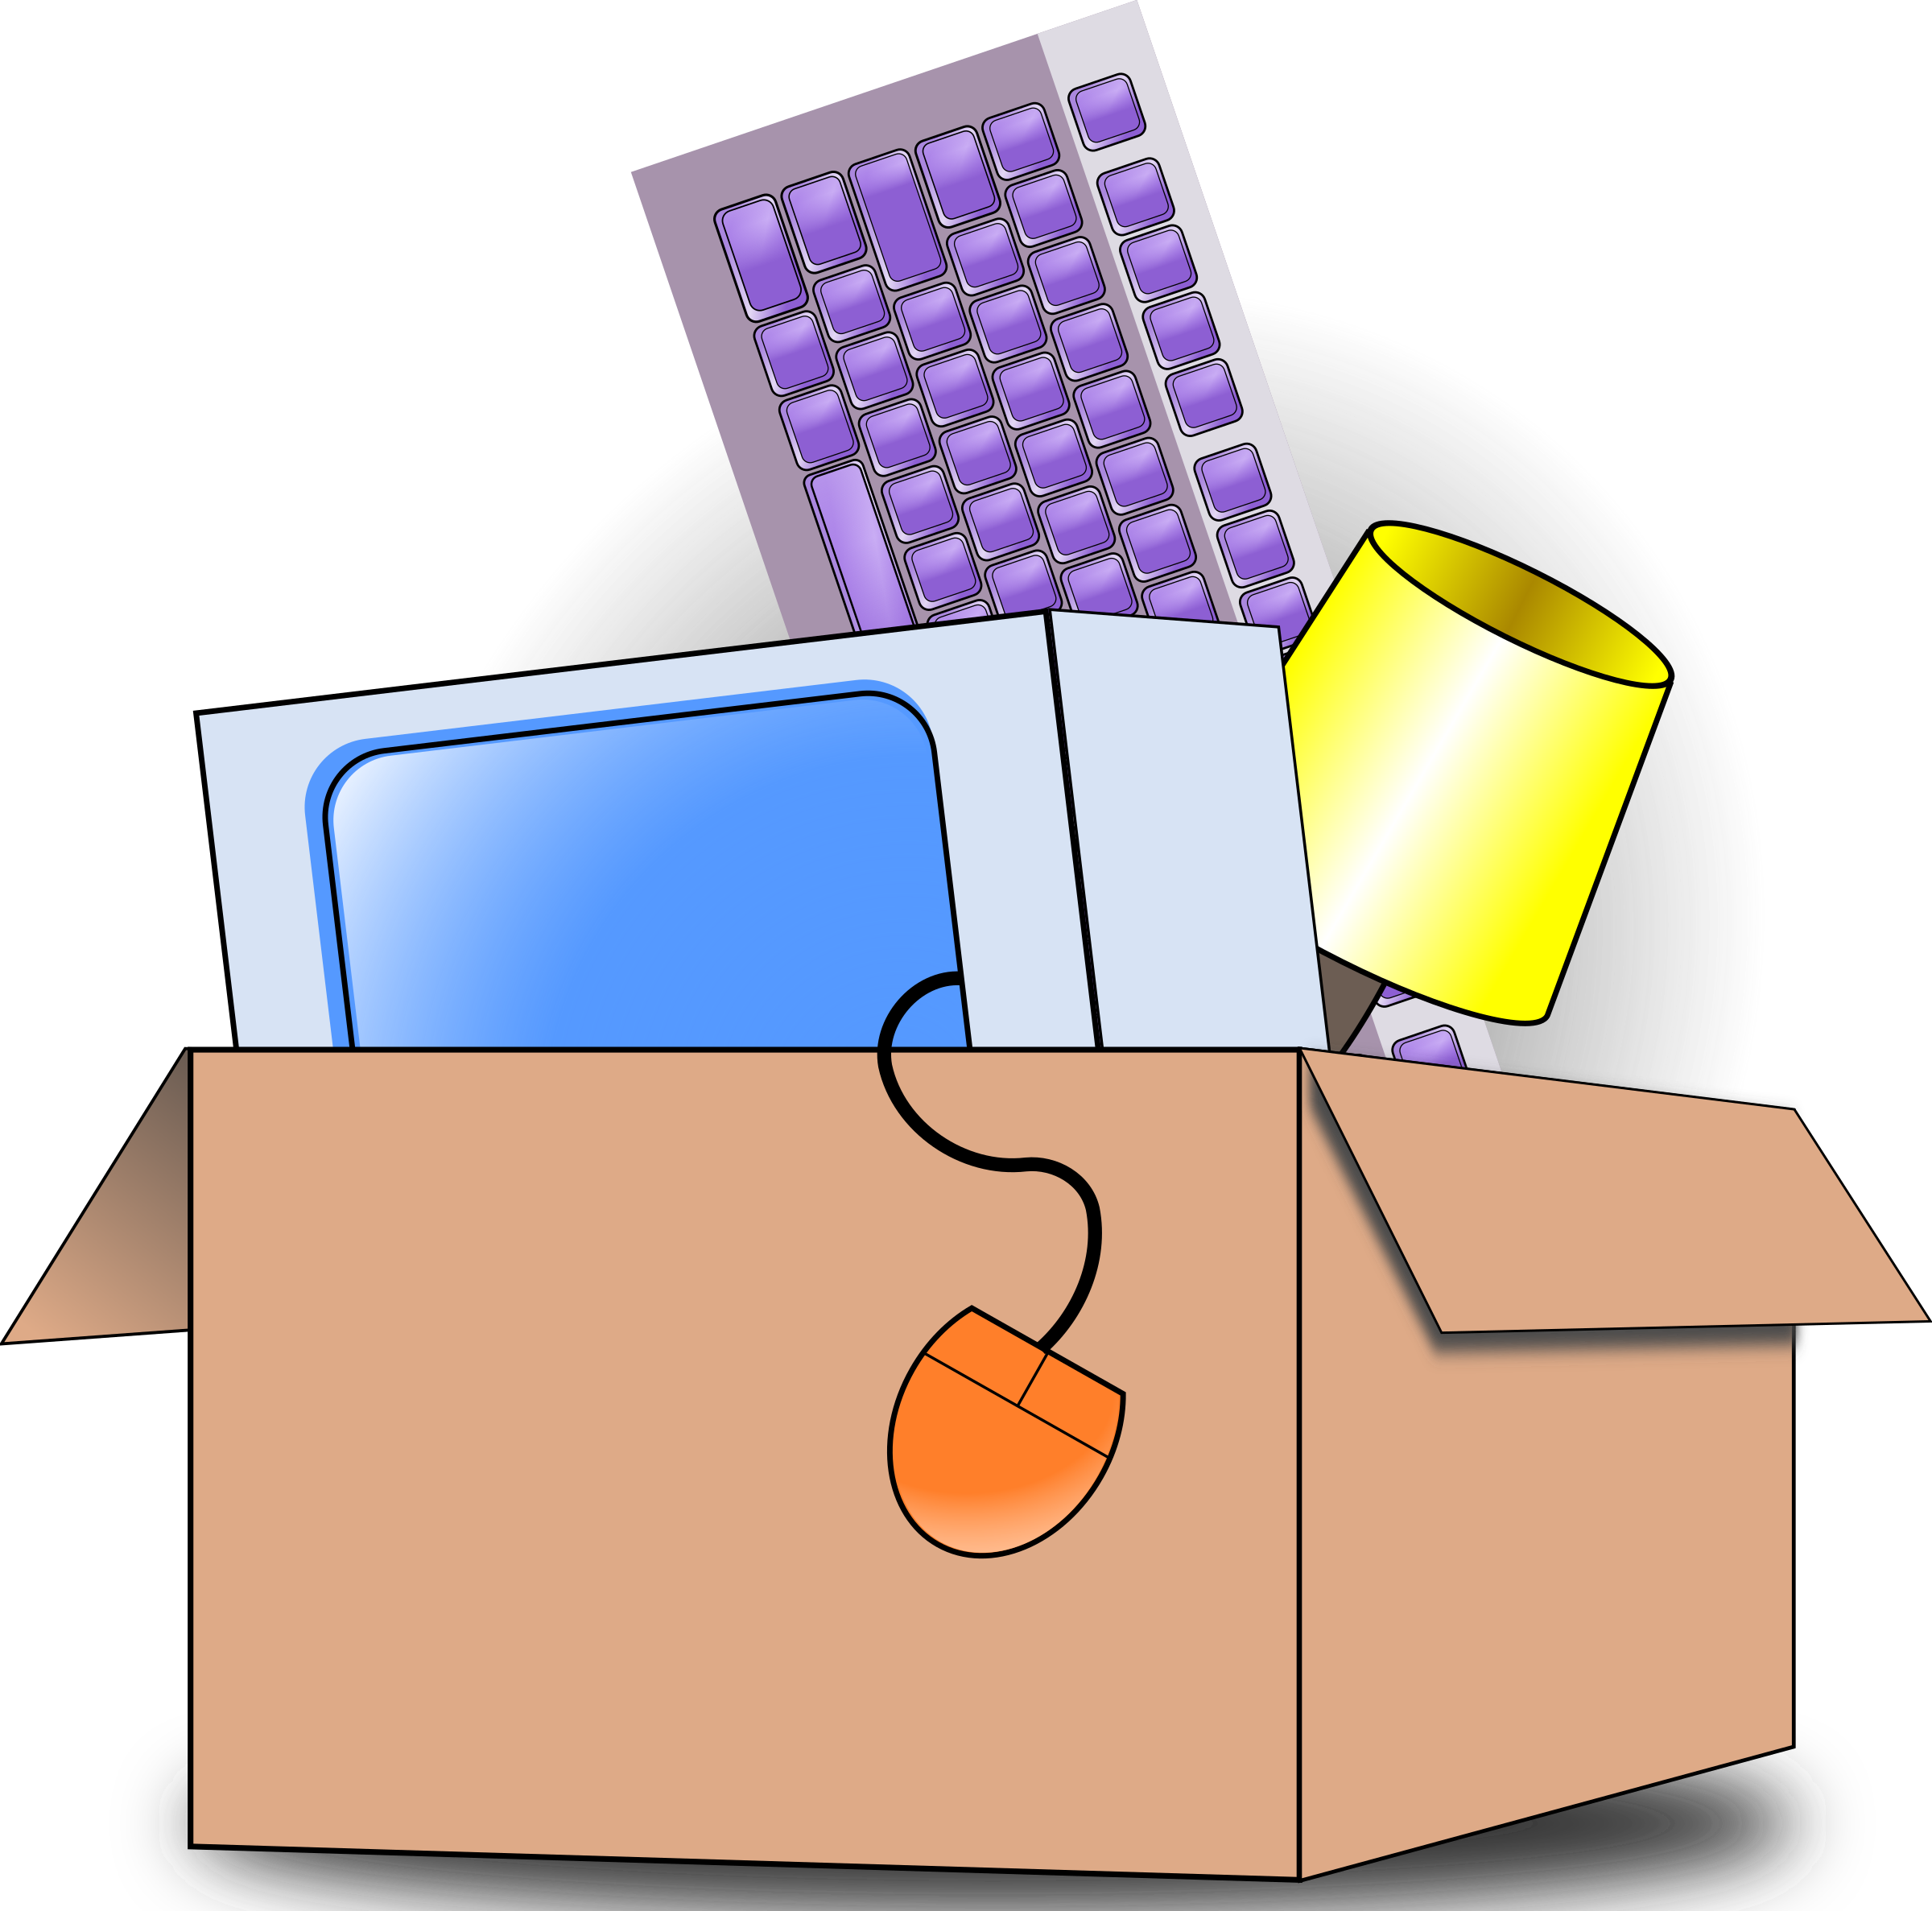 clip free download Moving boxes clipart black and white. Packing big image png